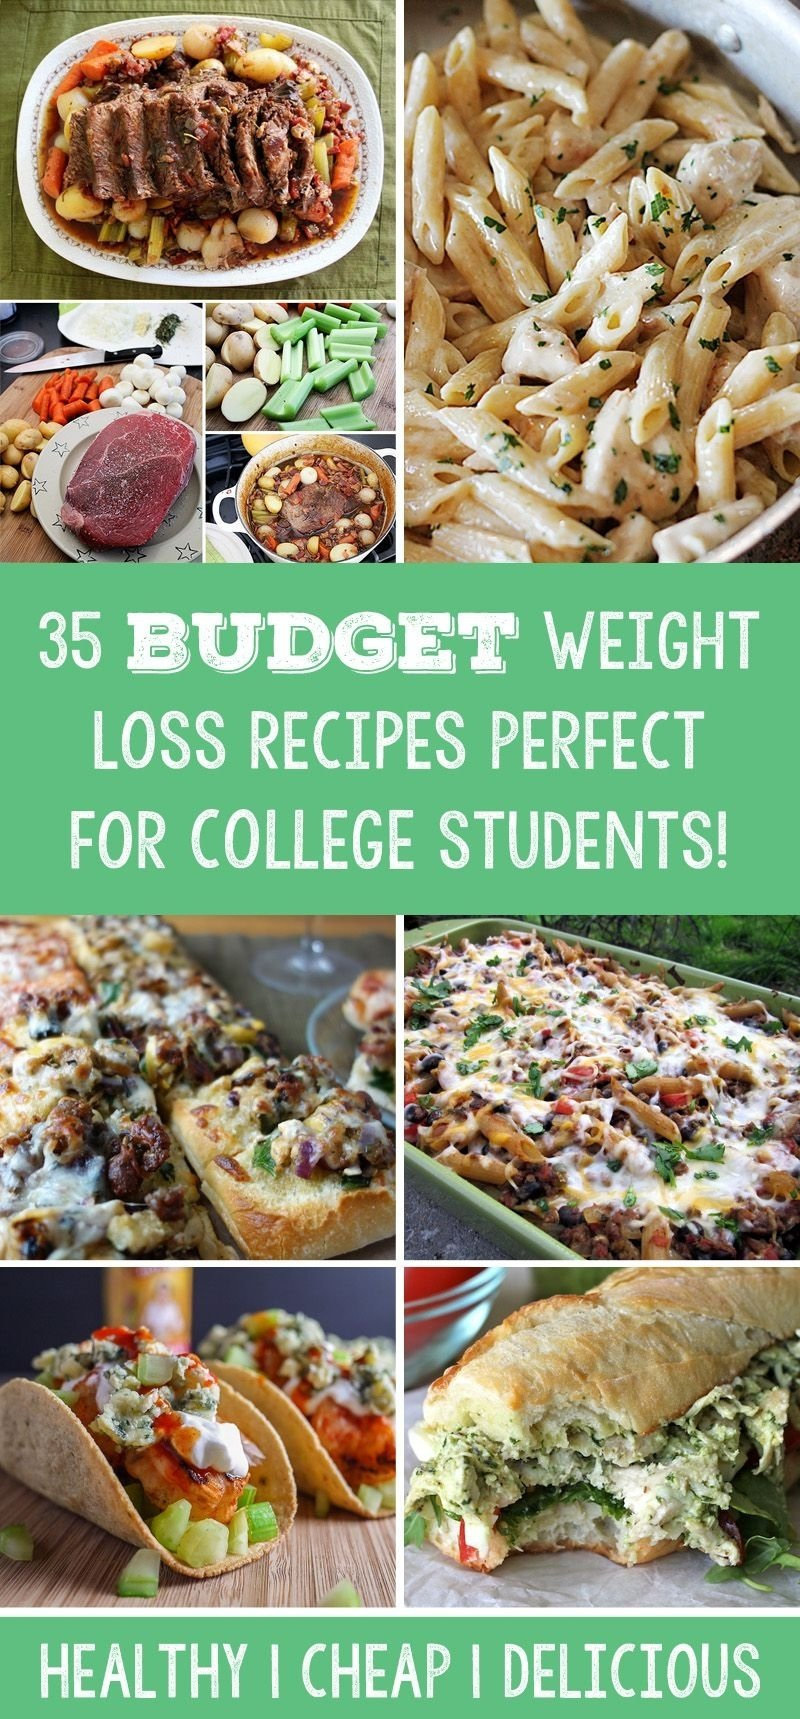 10 Lovable Meal Ideas For College Students 35 budget weight loss recipes perfect for college students 2020